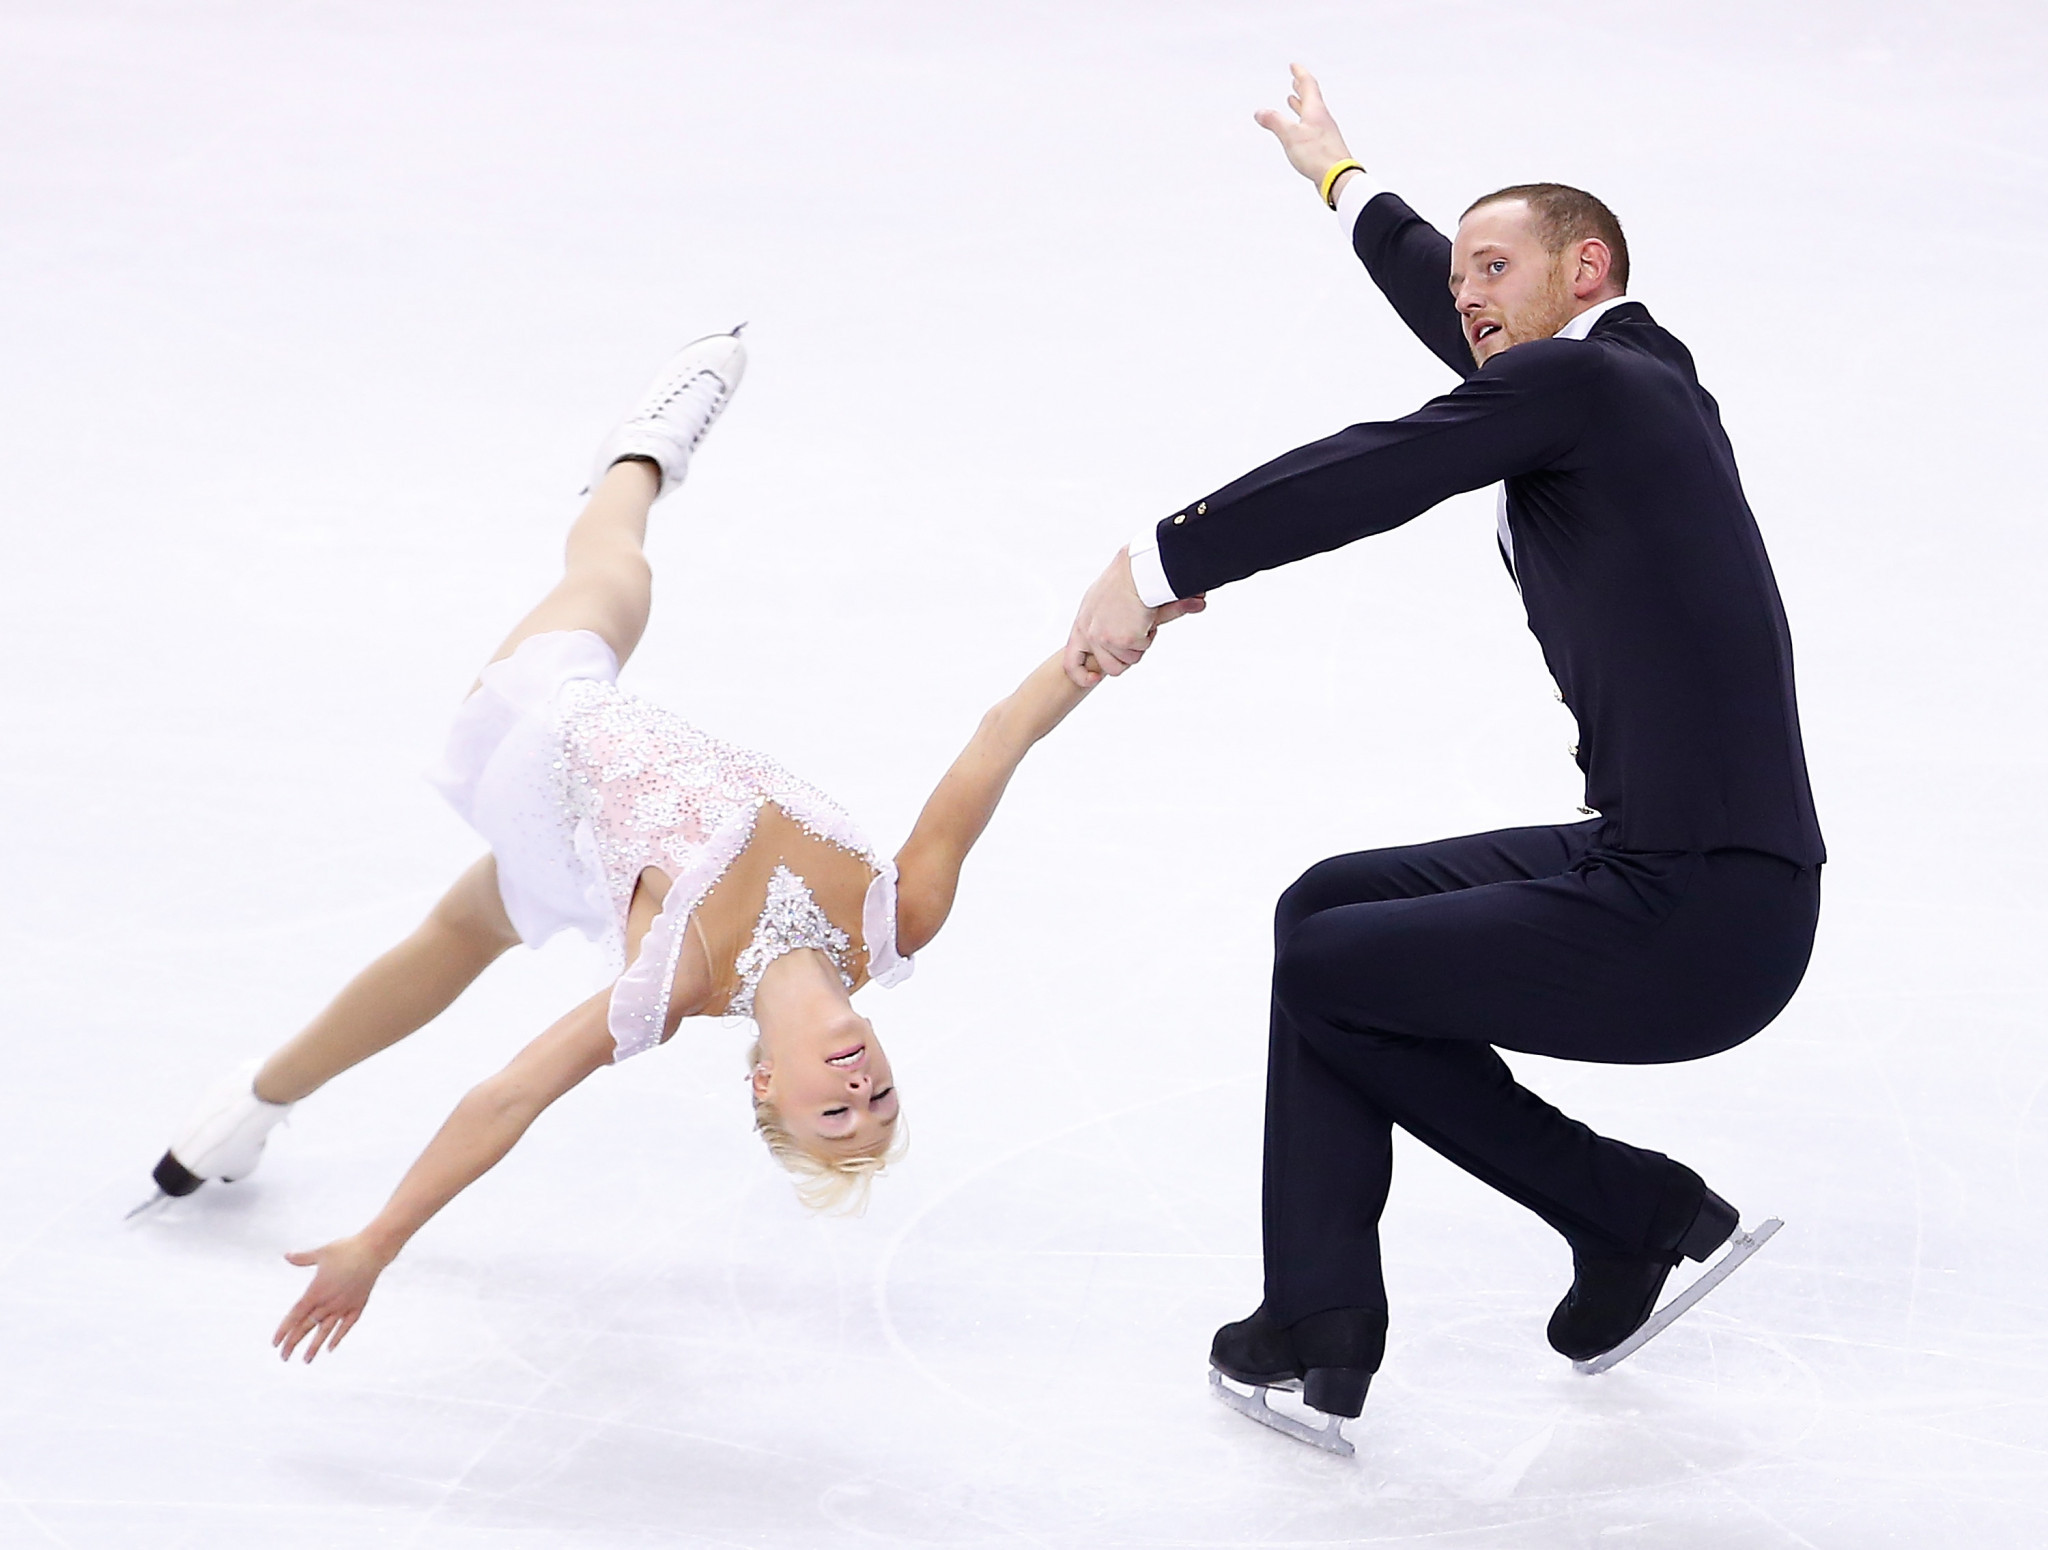 US Center for SafeSport close investigation into late figure skater Coughlin